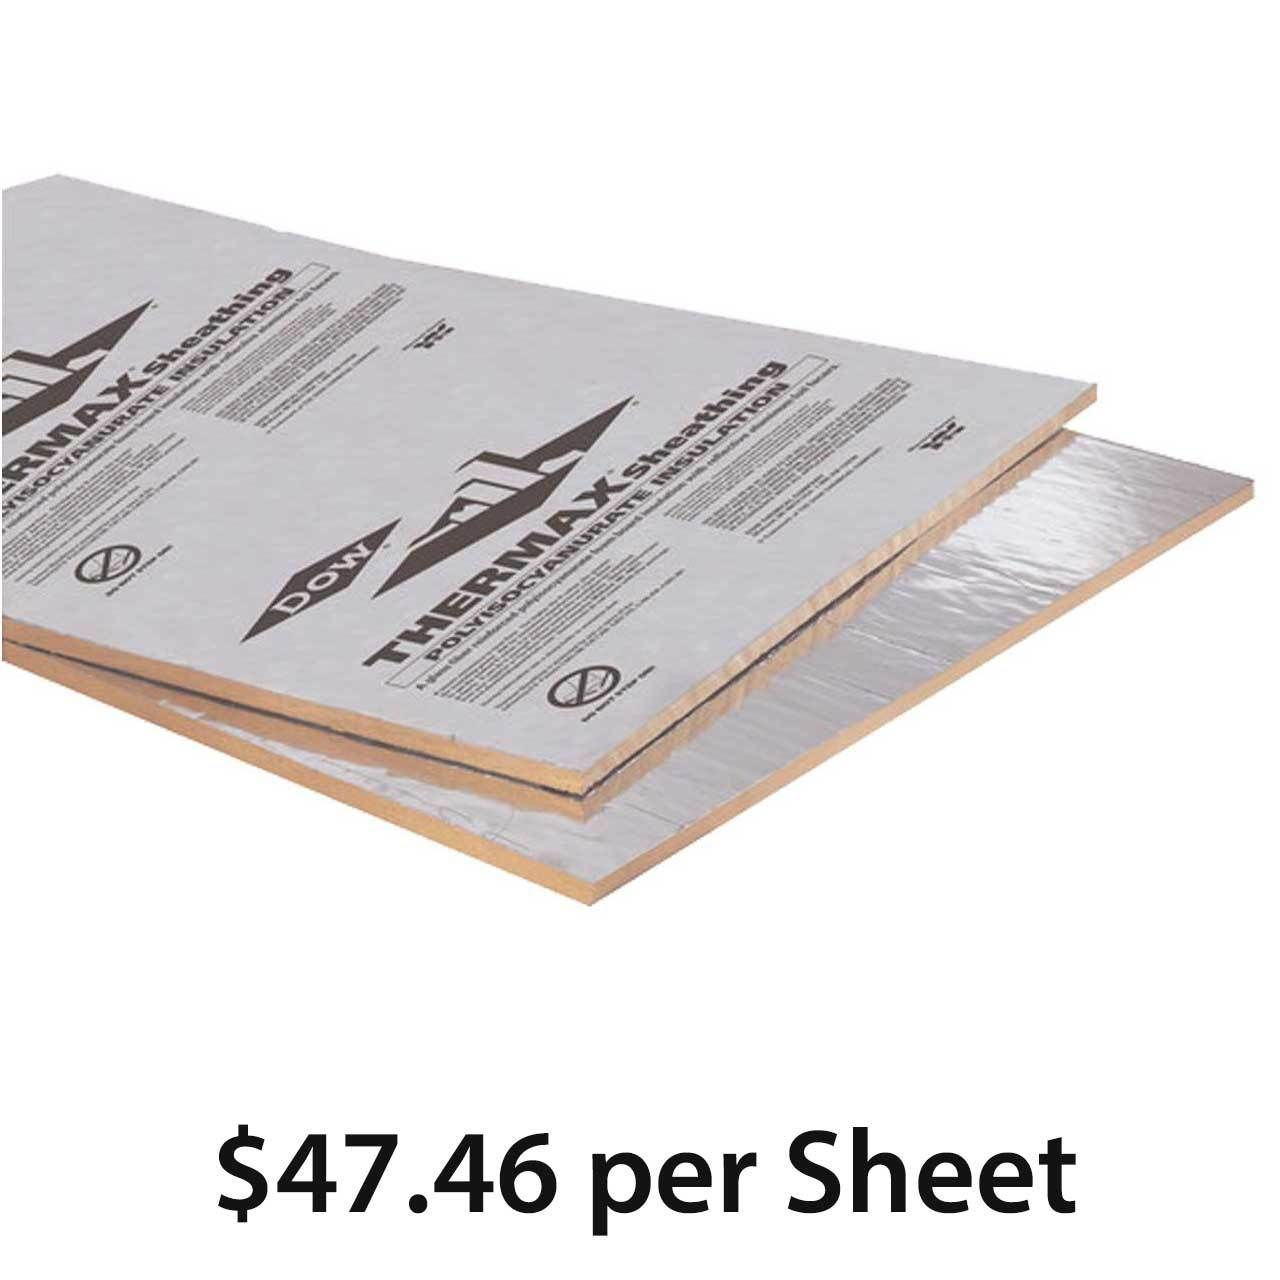 Thermax Sheathing Foil Finish 1 55 In 4 X8 Sheet R 10 1 Sheathing Rigid Board Insulation Foil Tape